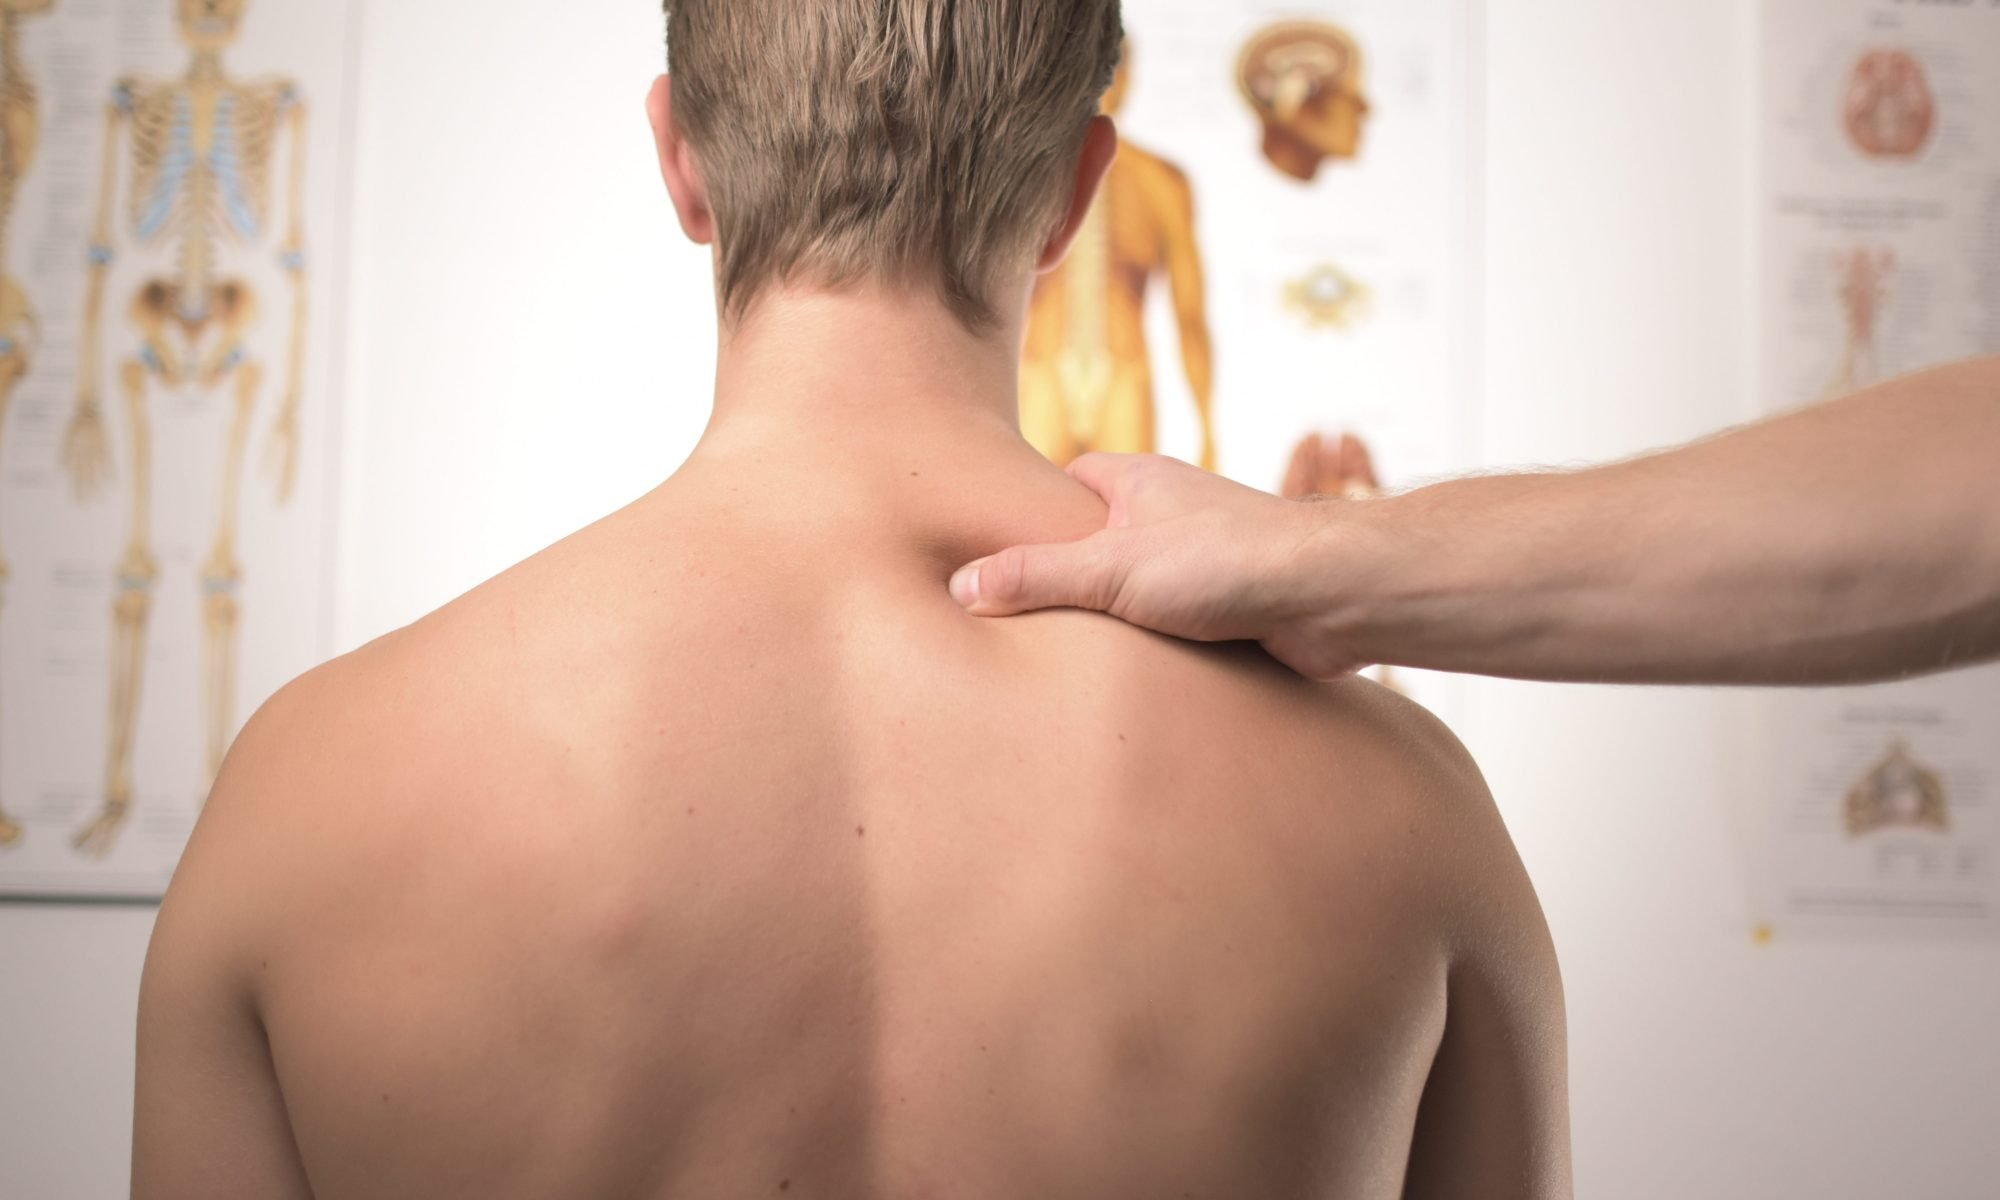 Treatment of neck injury